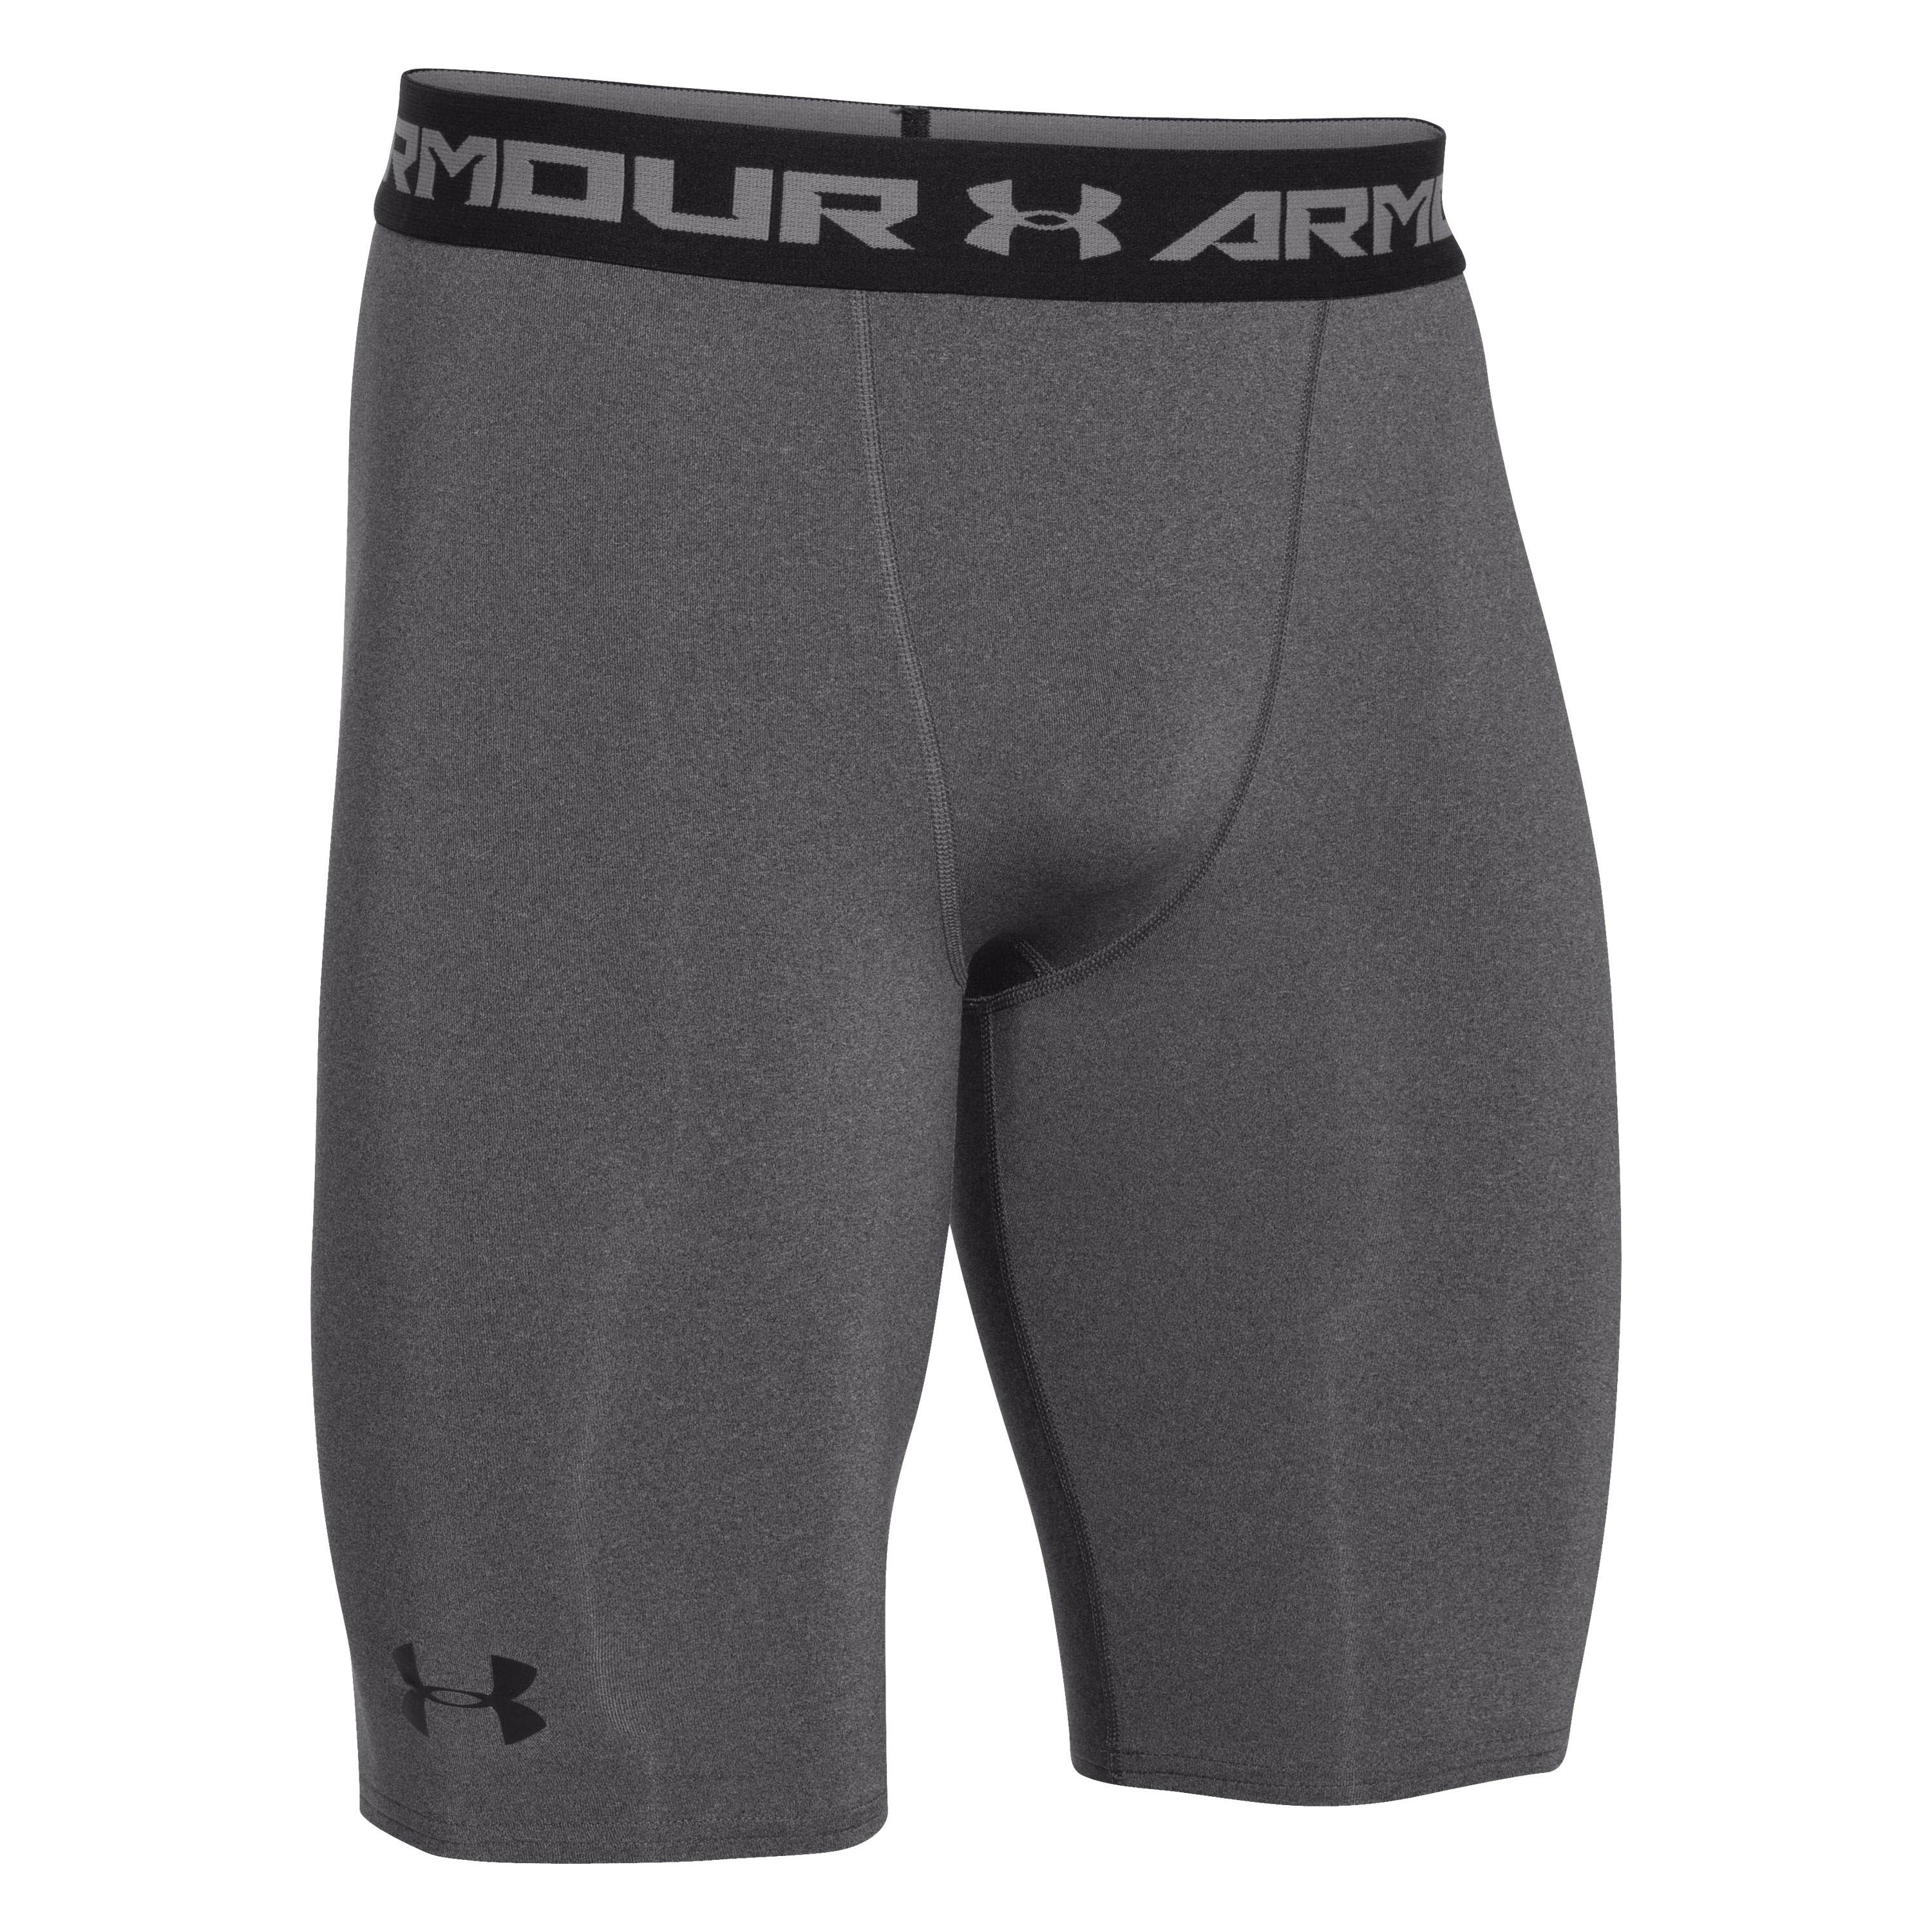 Under Armour Compression Shorts HeatGear lang grau meliert